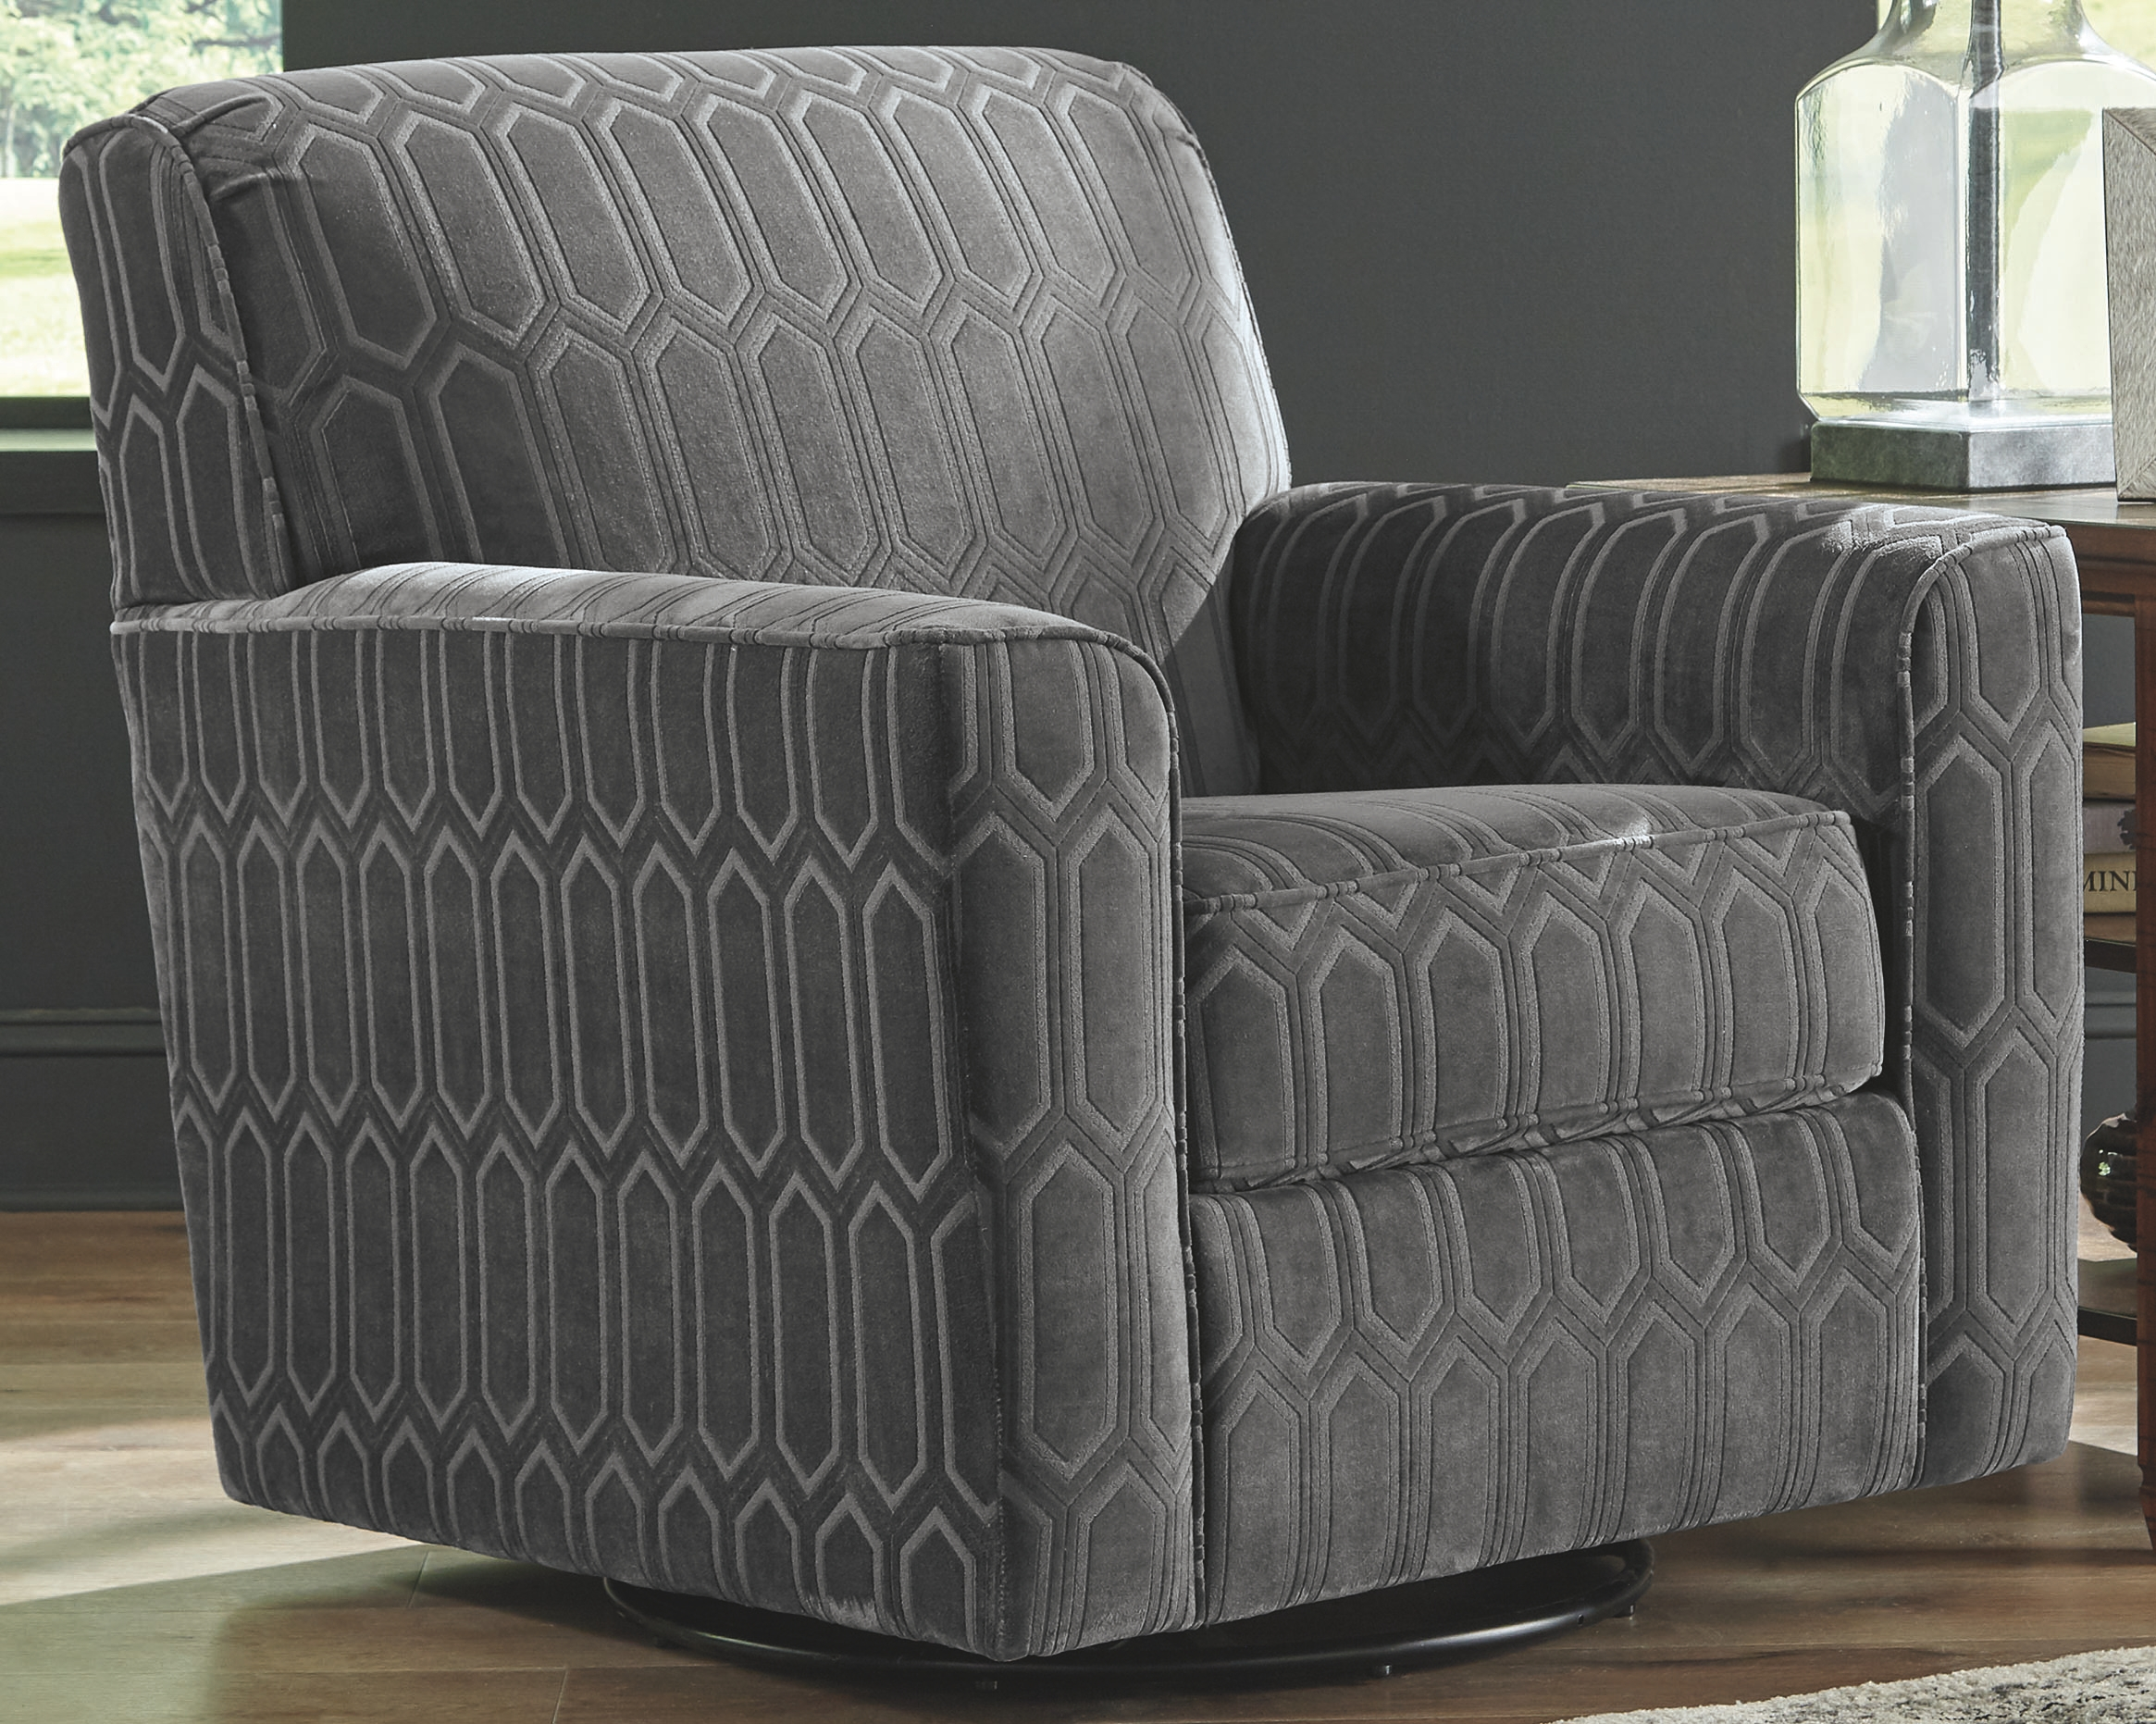 Zarina Accent Chair By Signature Design Ashley 110125677 Turner S Budget Furniture